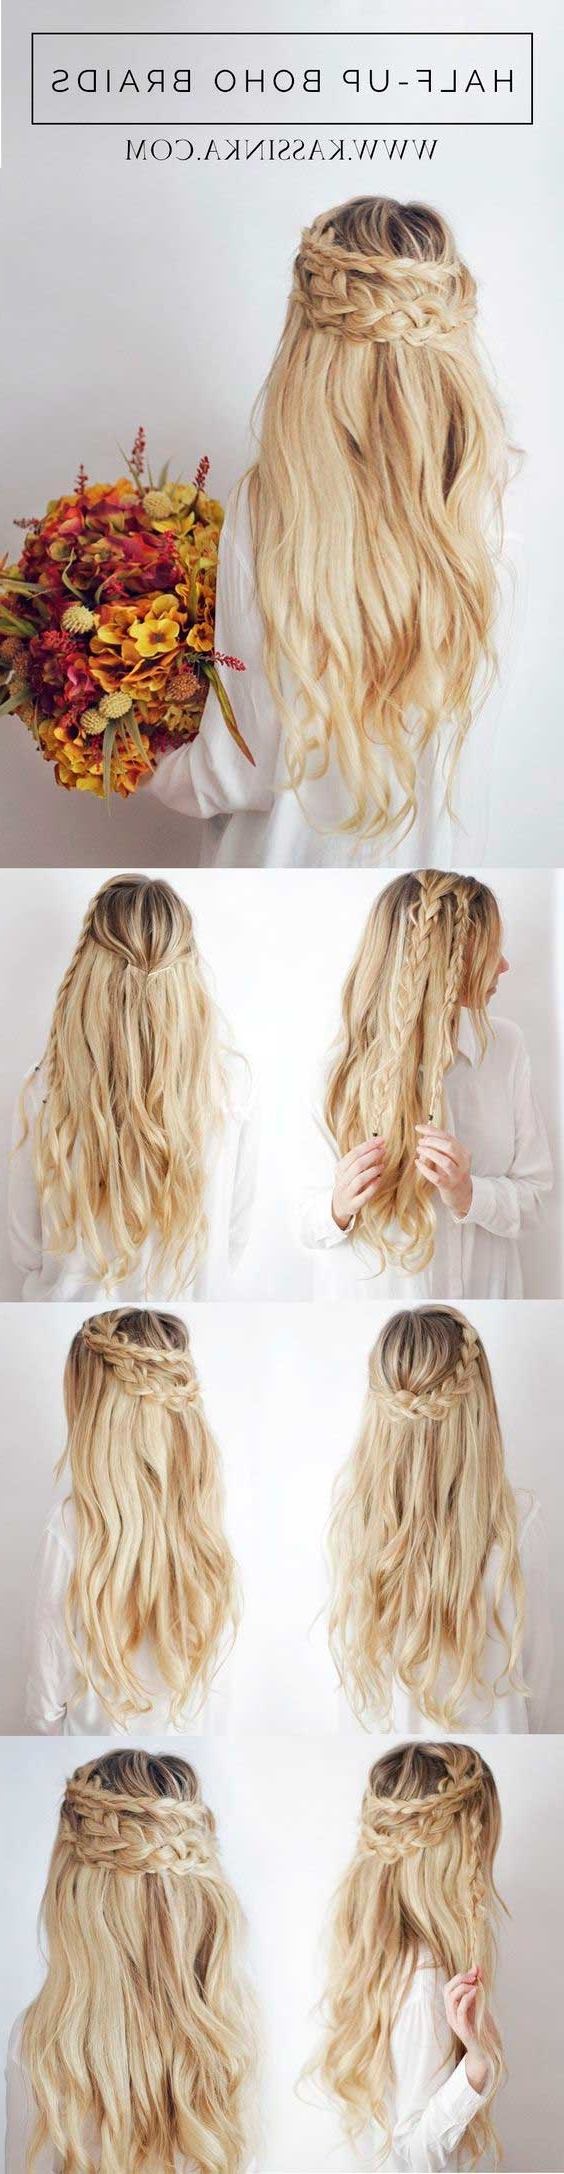 18 Half Up/half Down Hairstyle Tutorials Perfect For Prom – Gurl For Diy Half Updo Hairstyles For Long Hair (View 6 of 15)